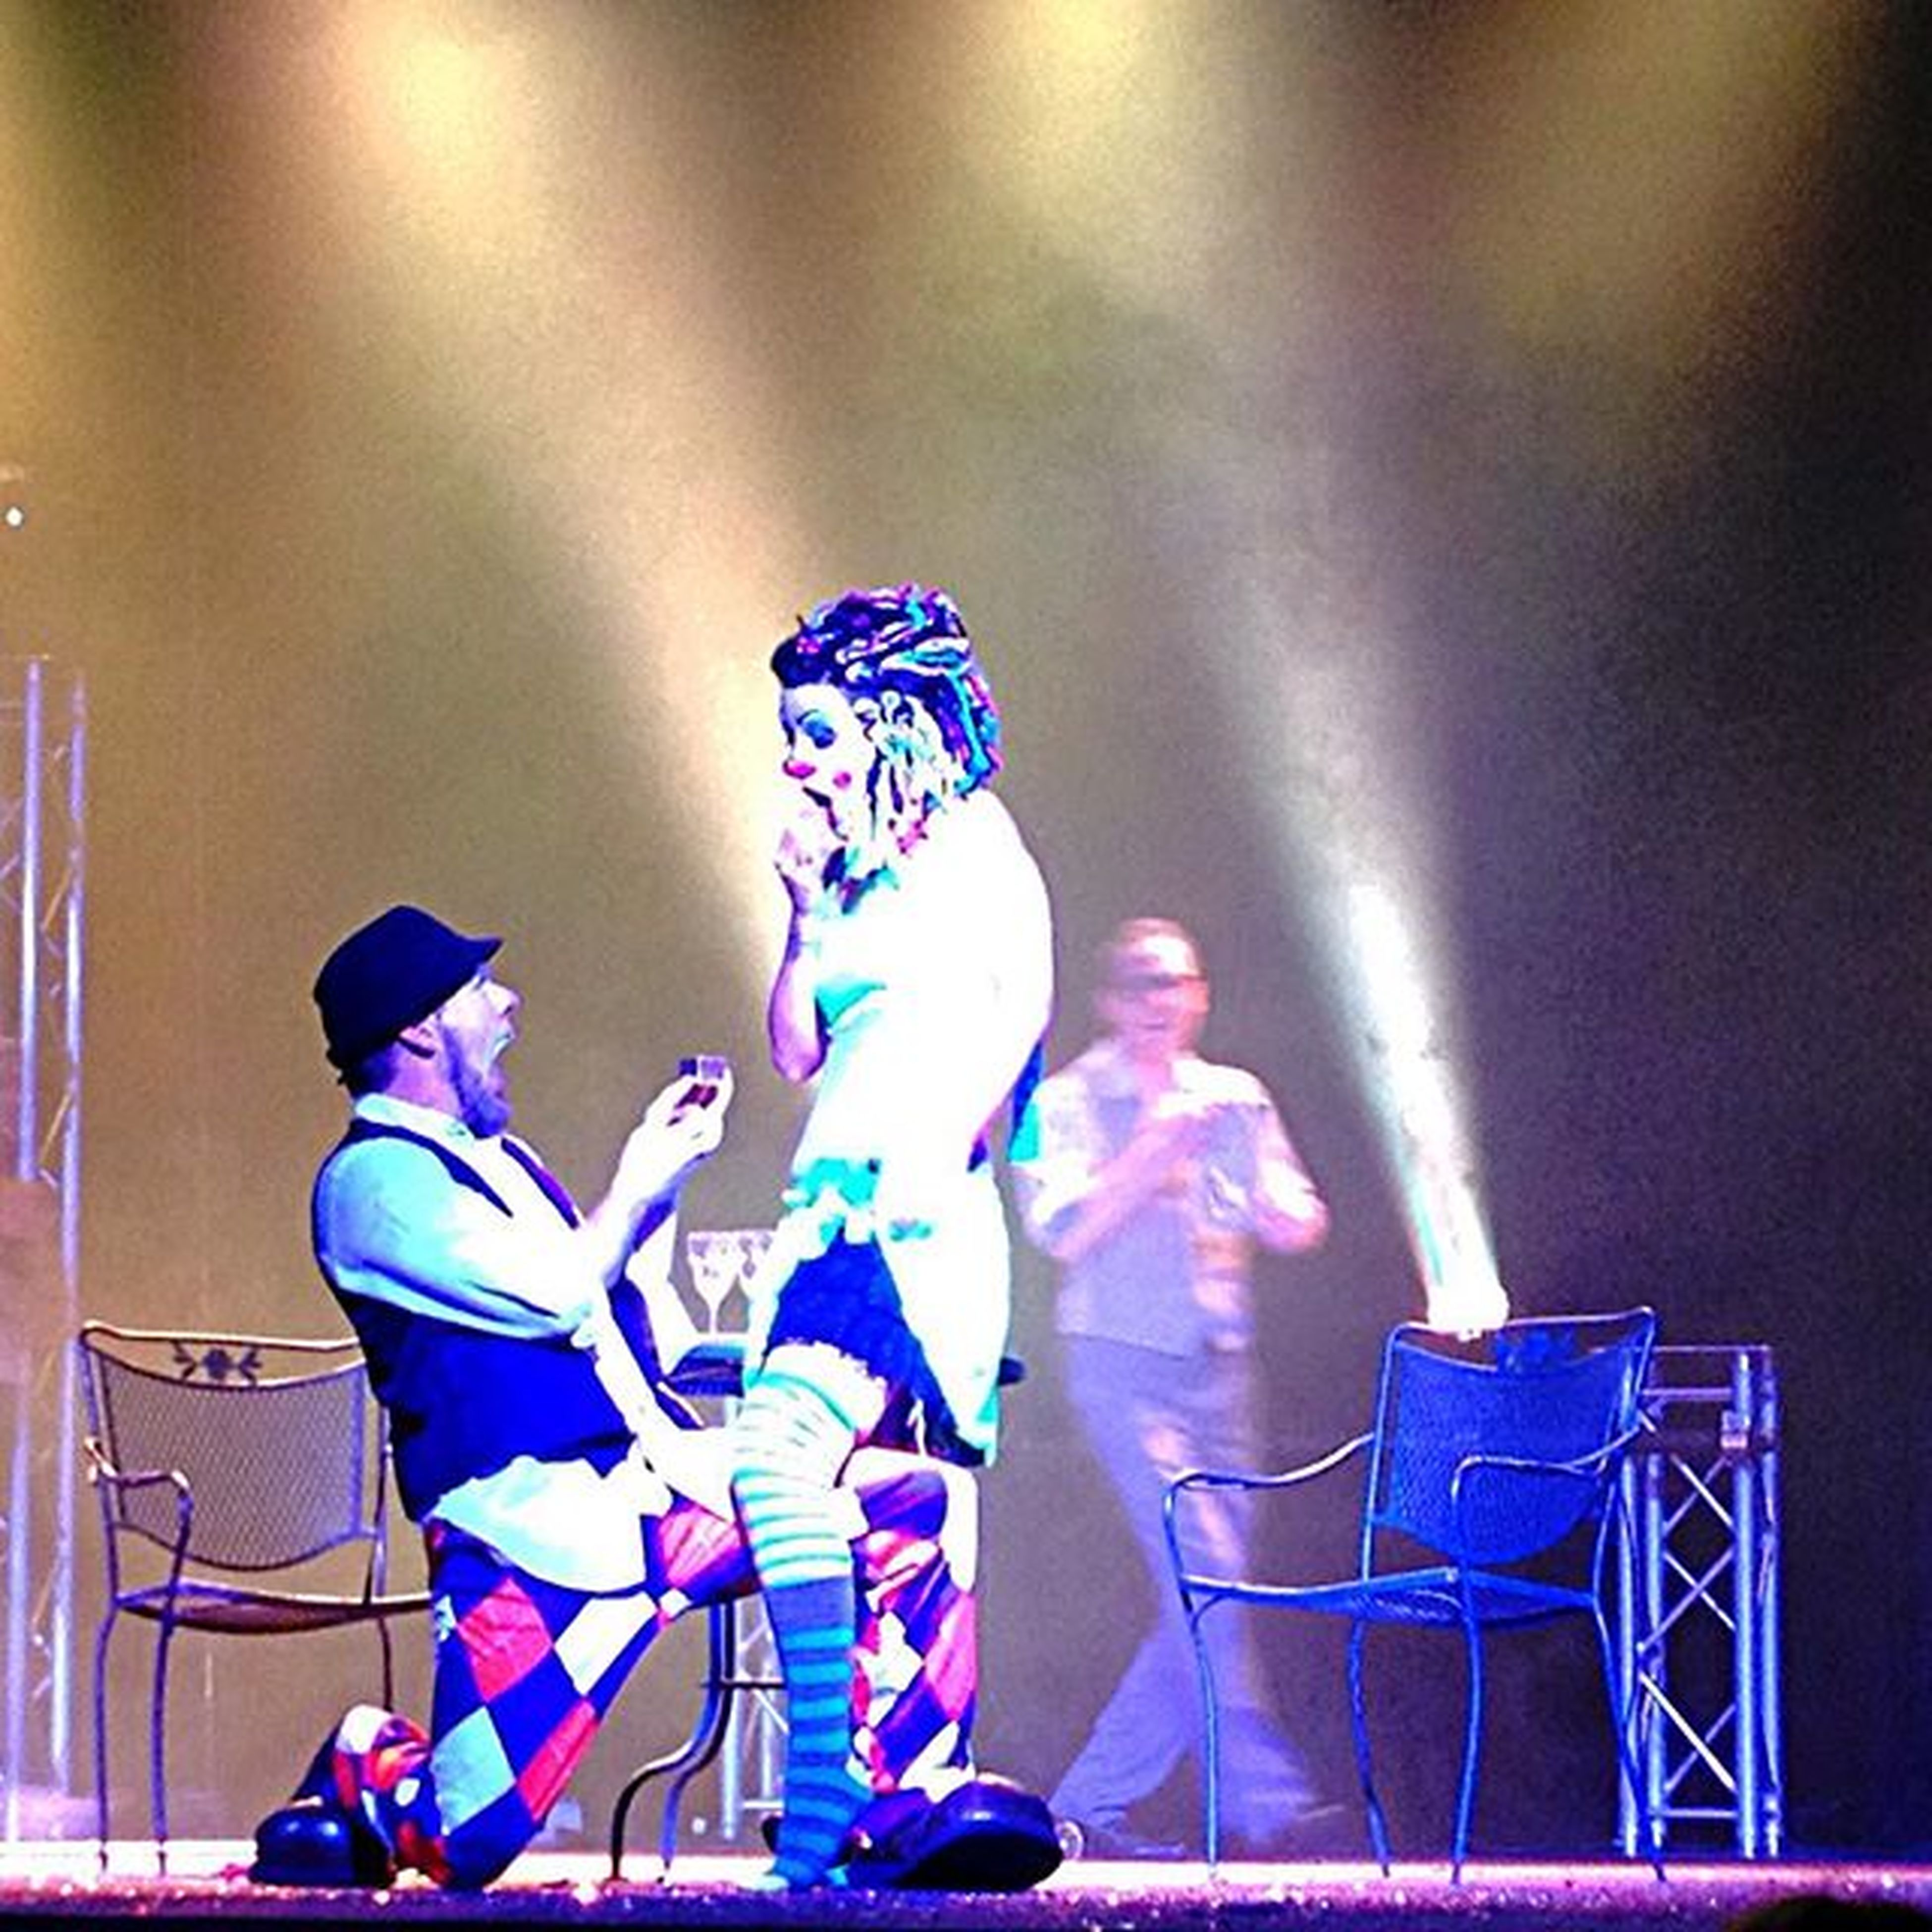 And the show ended with best surprise question popping ever! Engagement Clowns Clownlove Burlesque Carnivalesque Temple Knoxville Club Performance Popthequestion Propose Carneebiscuitt Candisour congrats to Chris and Michael! (Pronounced Michelle)